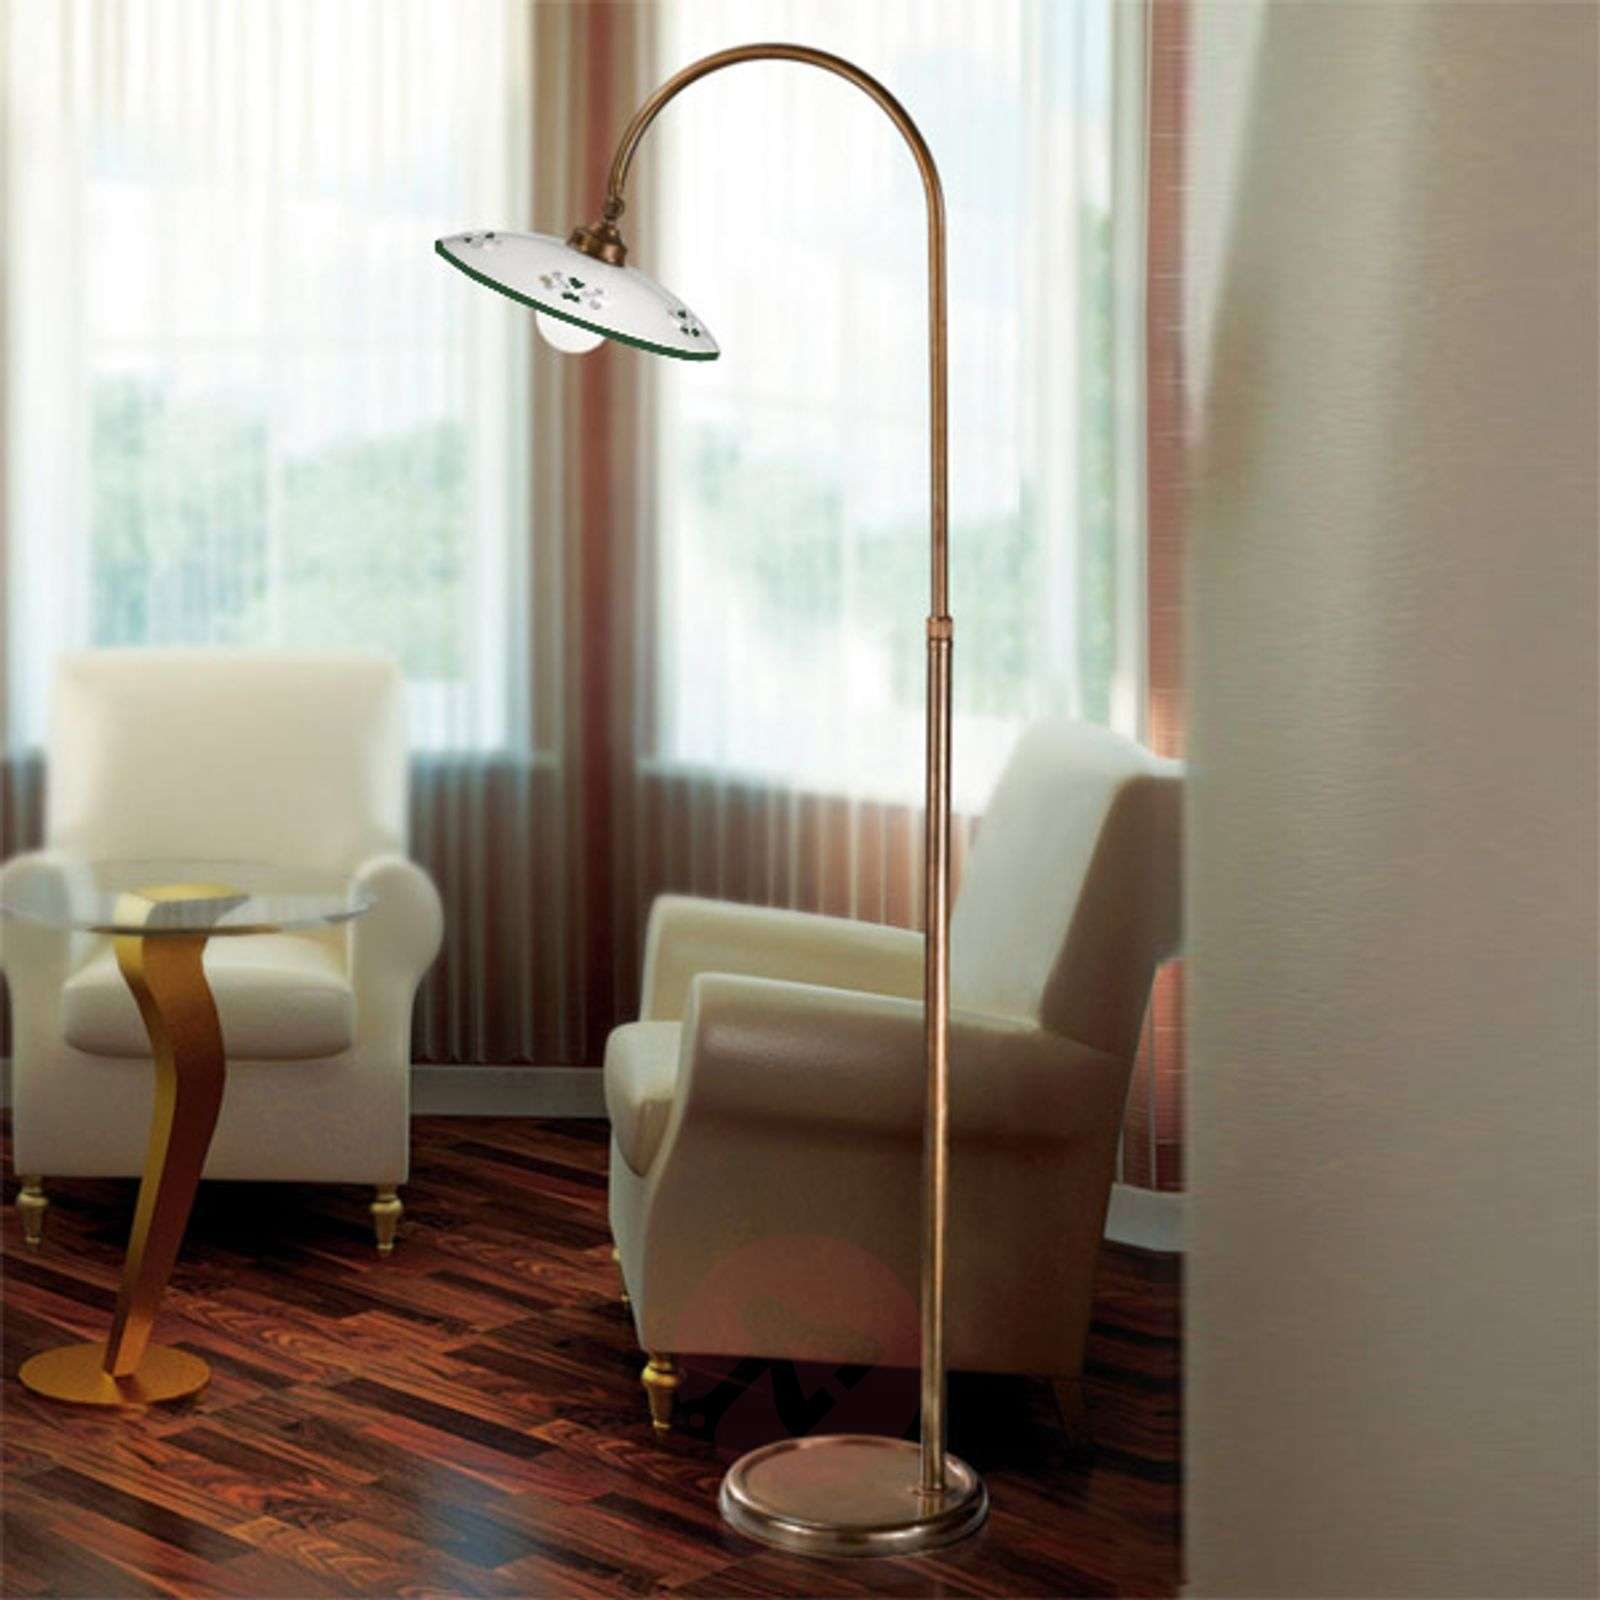 Bassano traditional floor lamp-2008035X-01